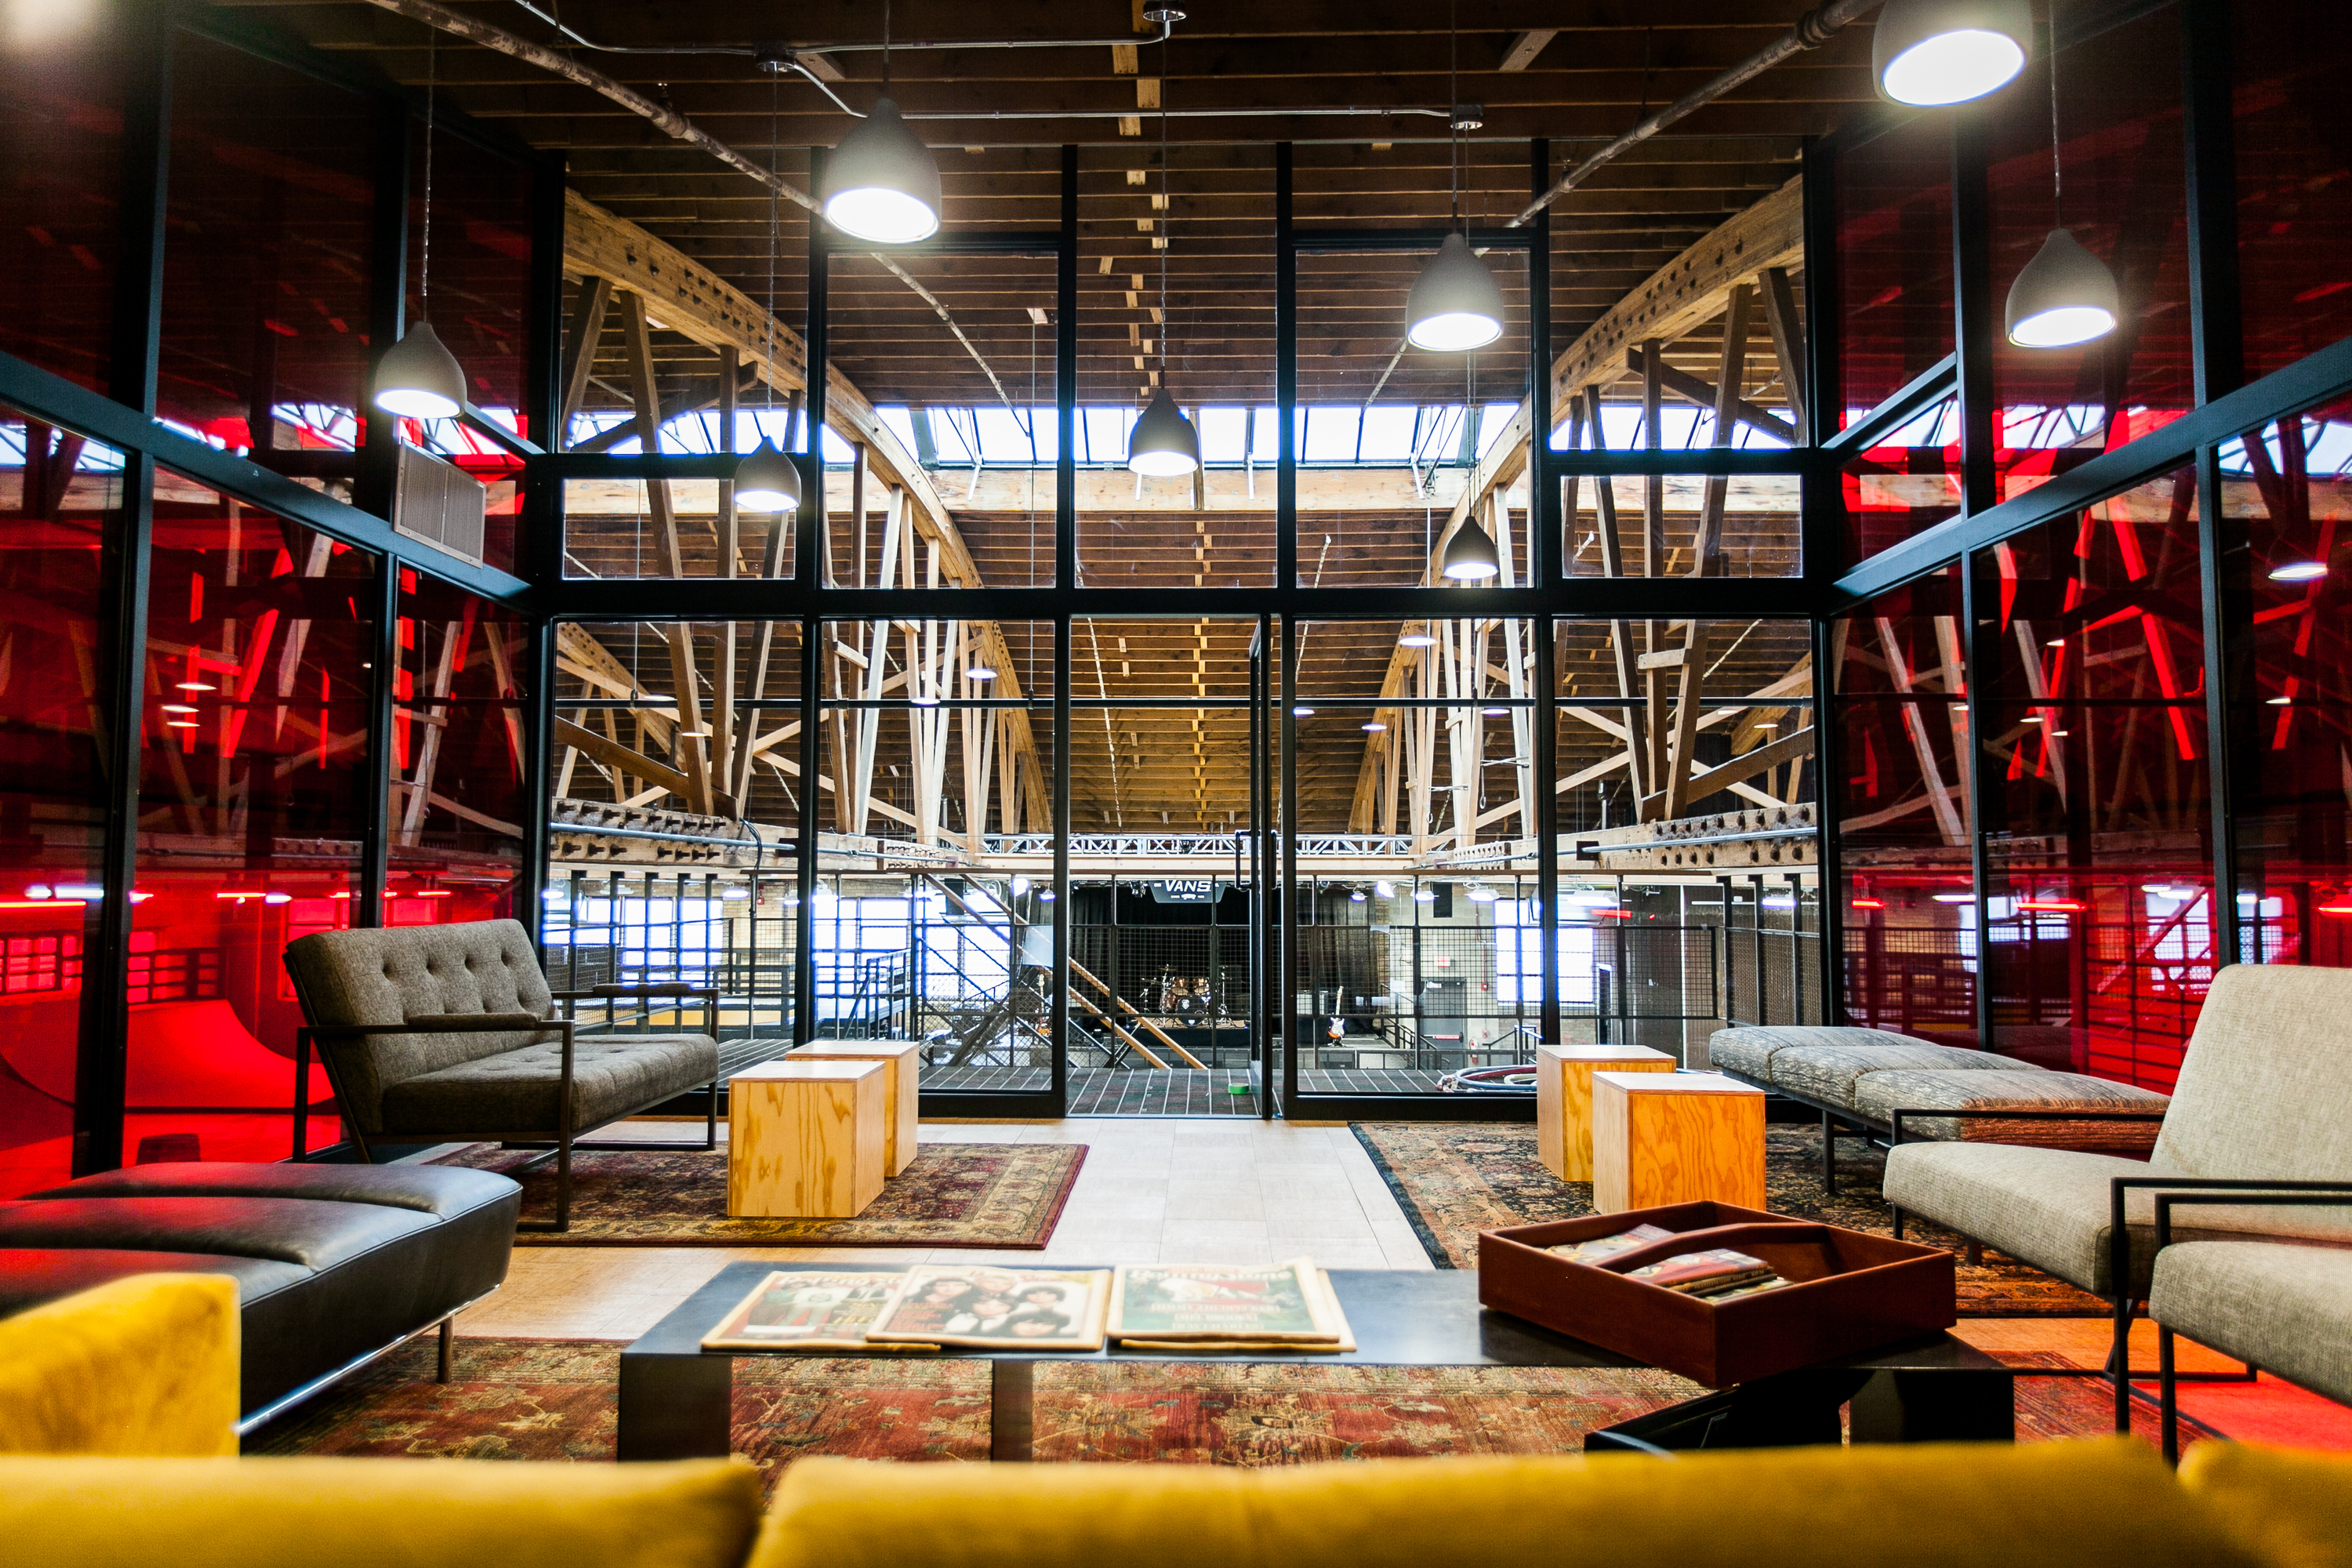 b11dc46ae0be48 House of Vans is bringing free concerts and events to the West Loop